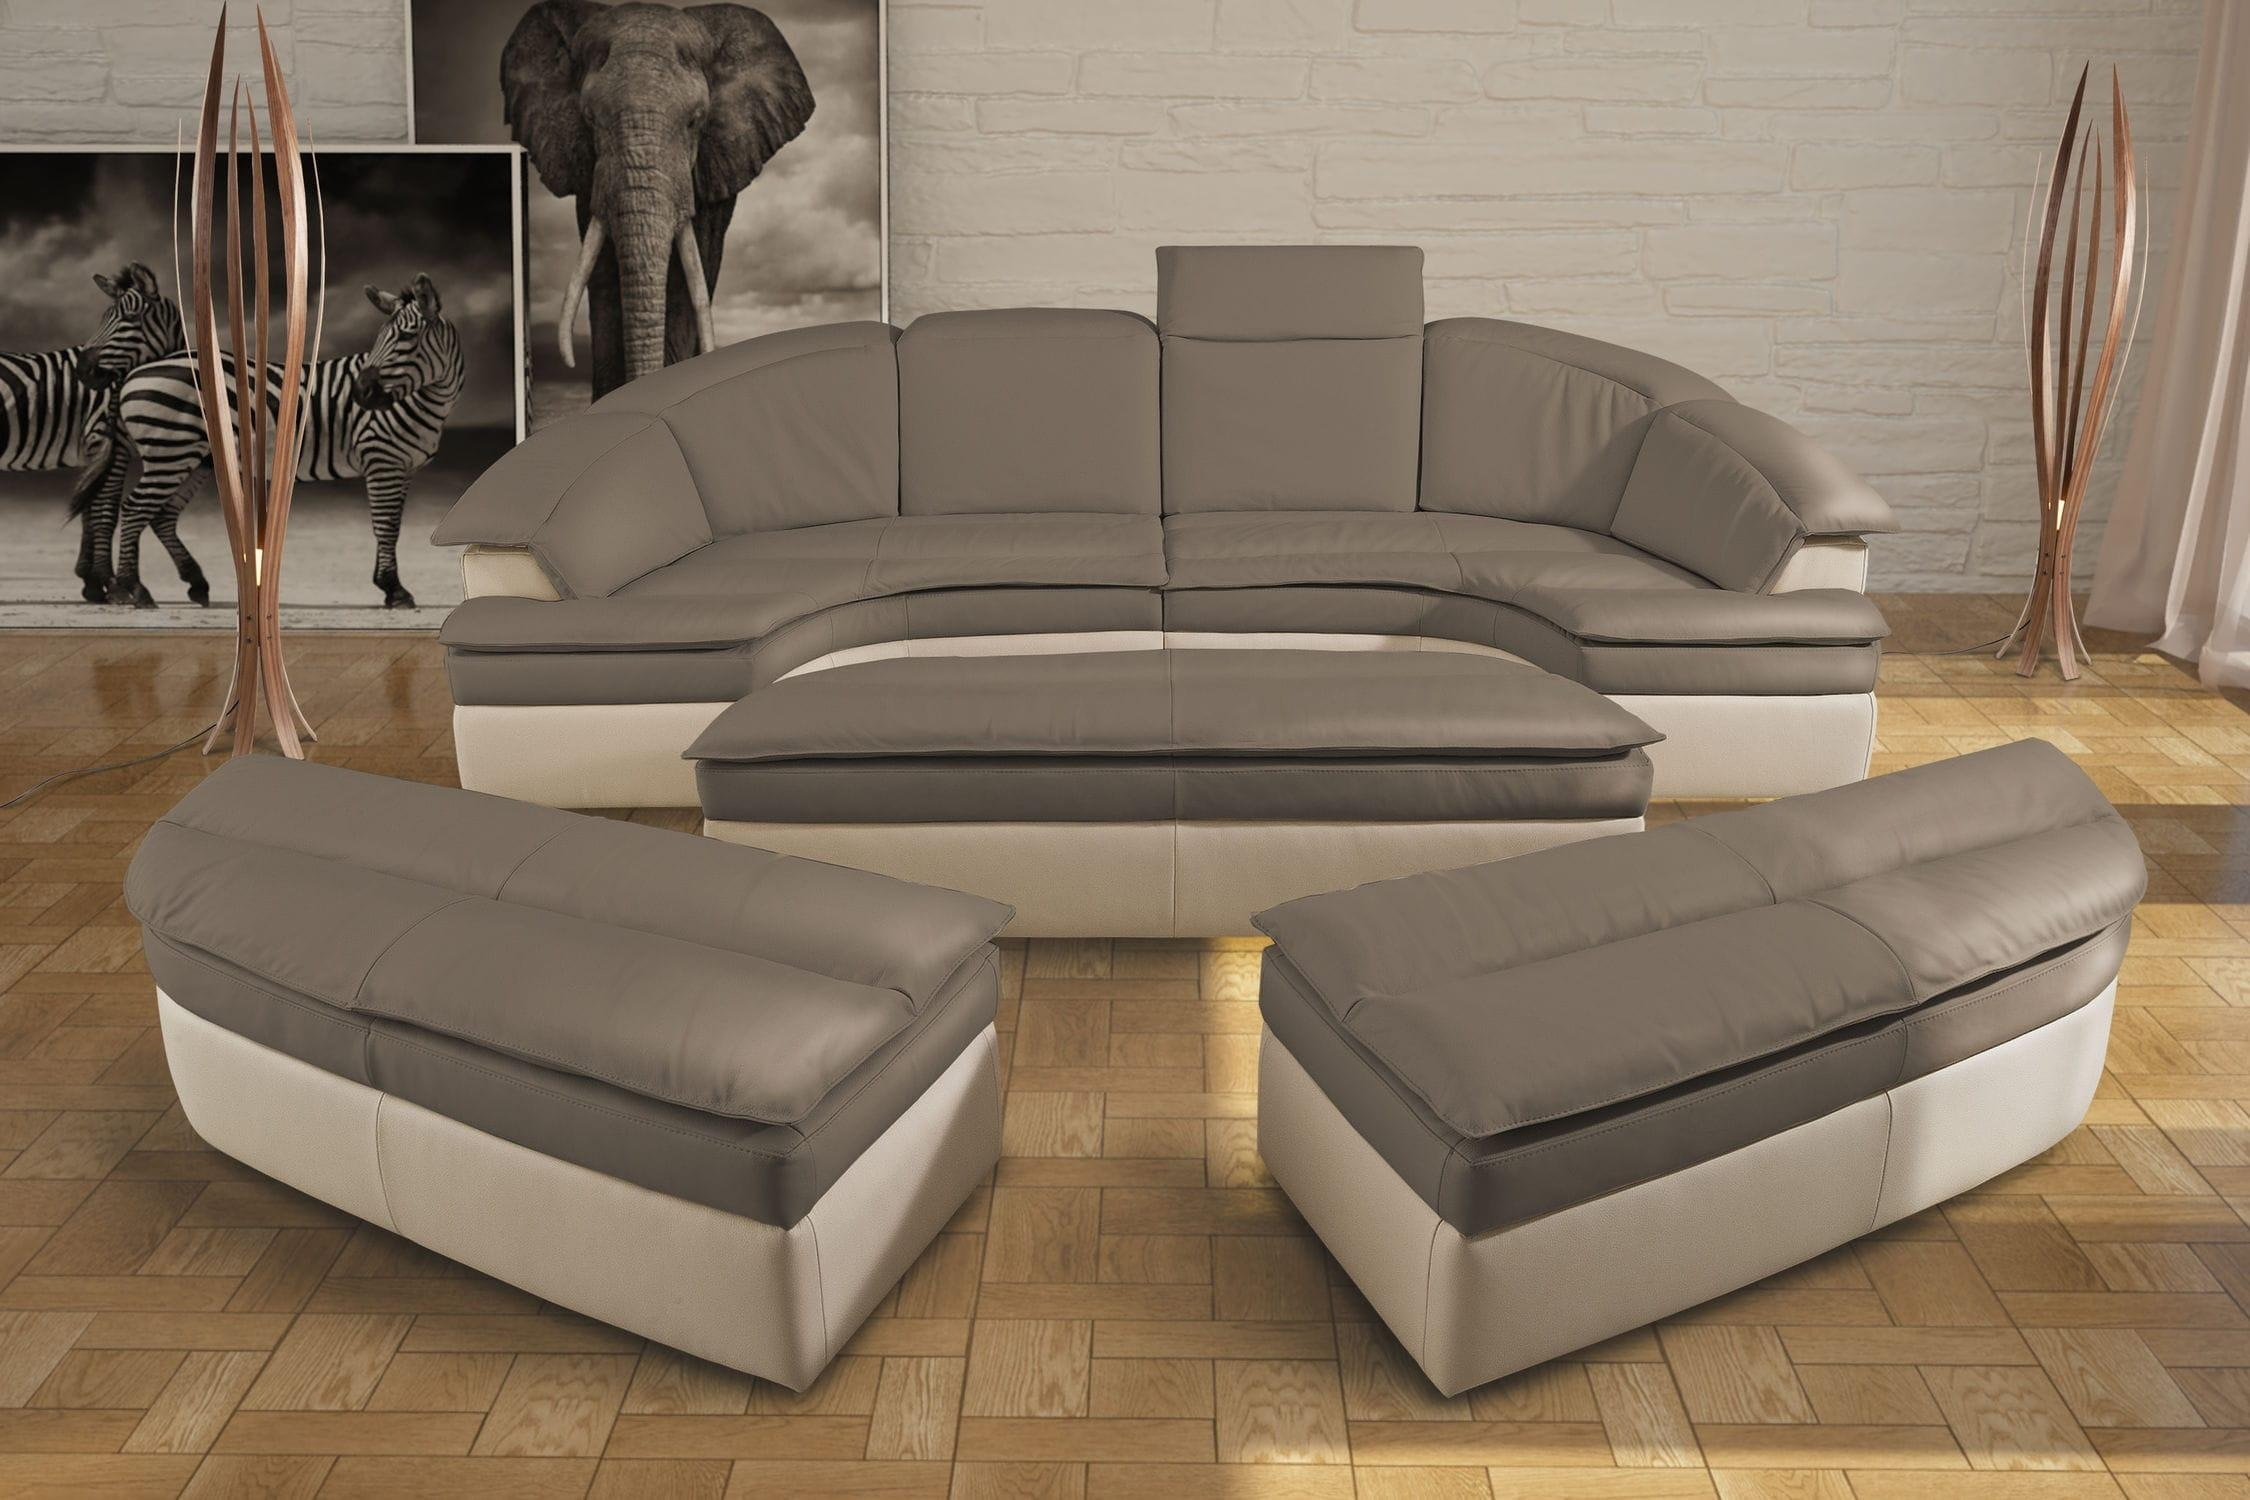 Modular Sofa / Semicircular / Contemporary / Leather – Galaxy With Regard To Semicircular Sofa (Image 6 of 20)